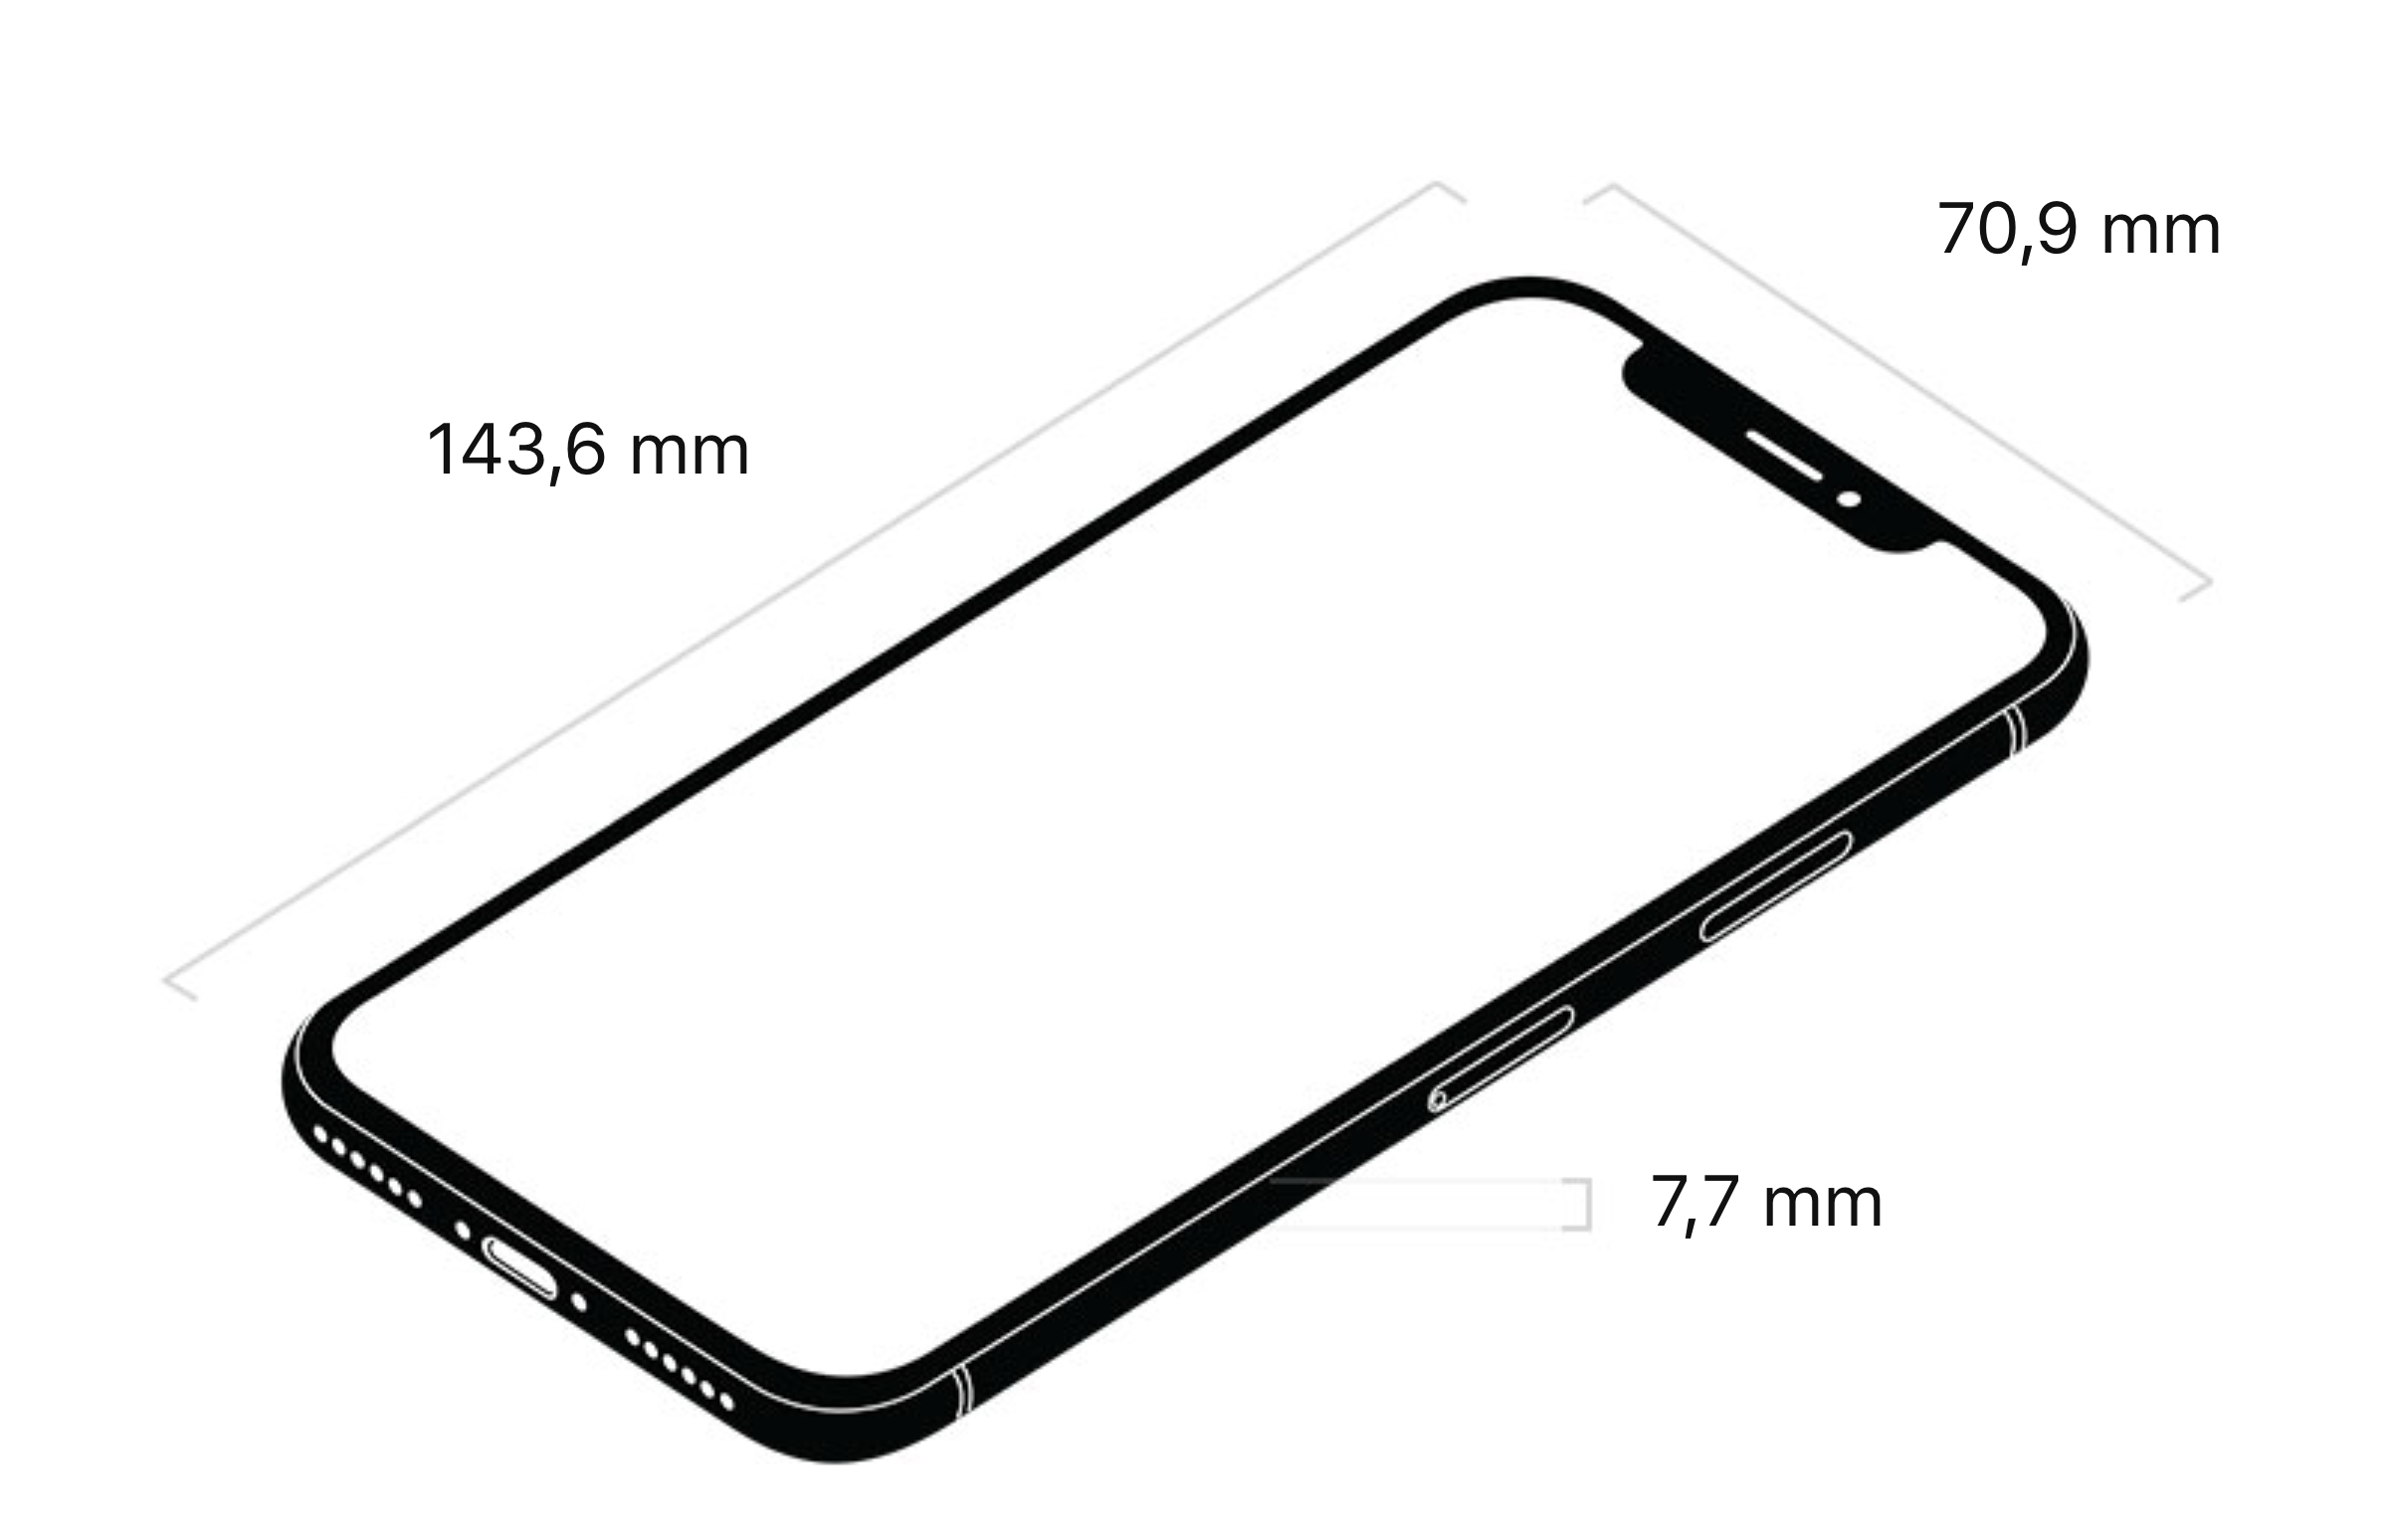 20170912 iPhone X dimensions